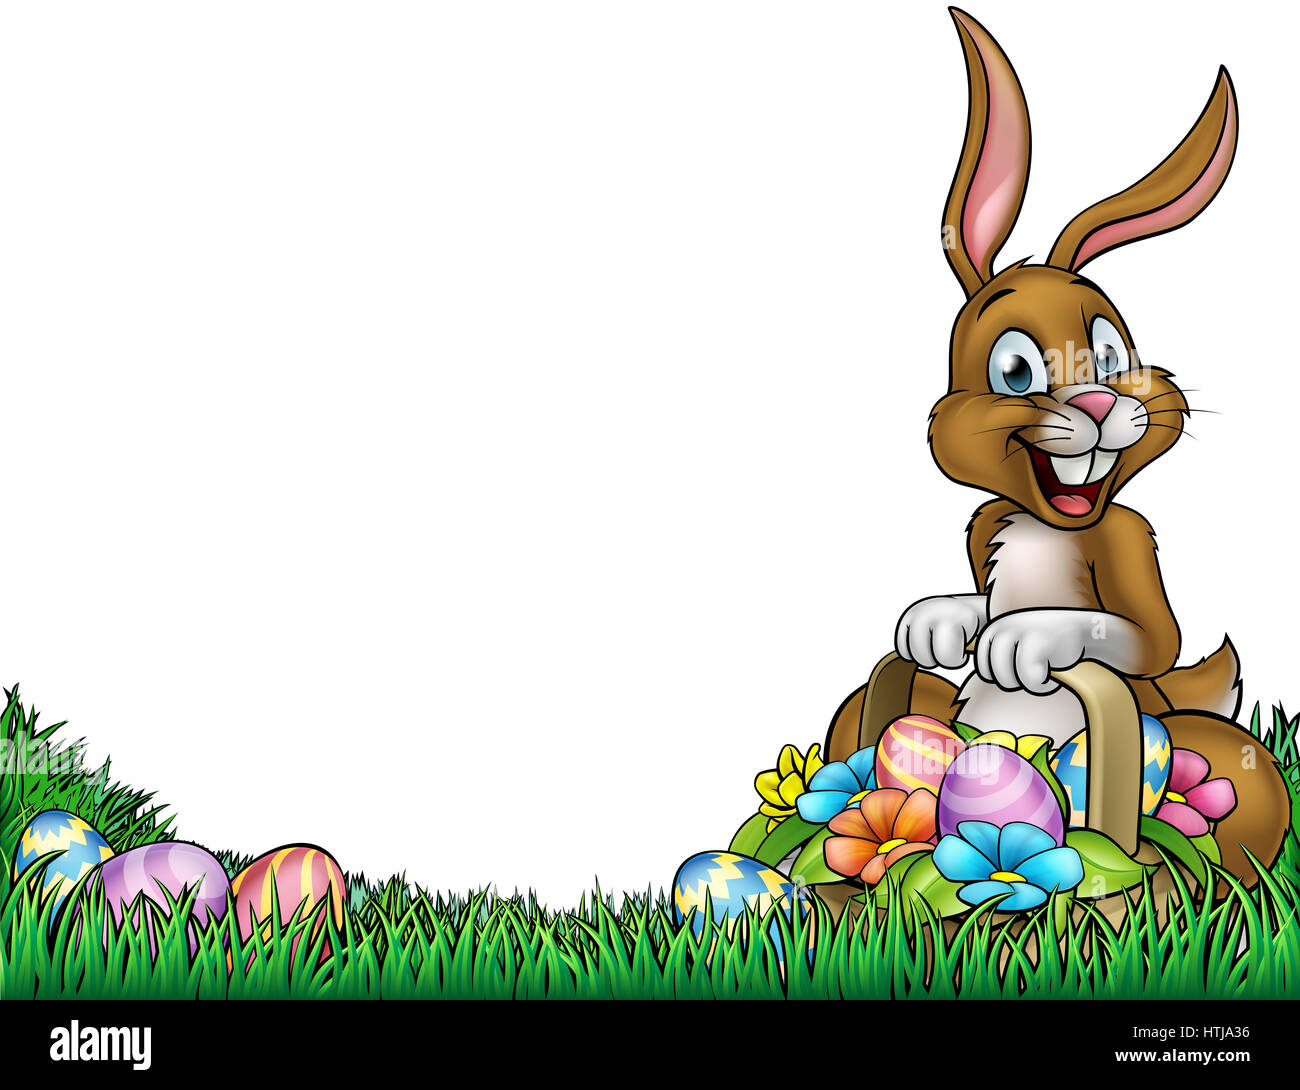 An Easter Background Frame Border Cartoon With A Bunny Holding A Basket  Full Of Easter Eggs